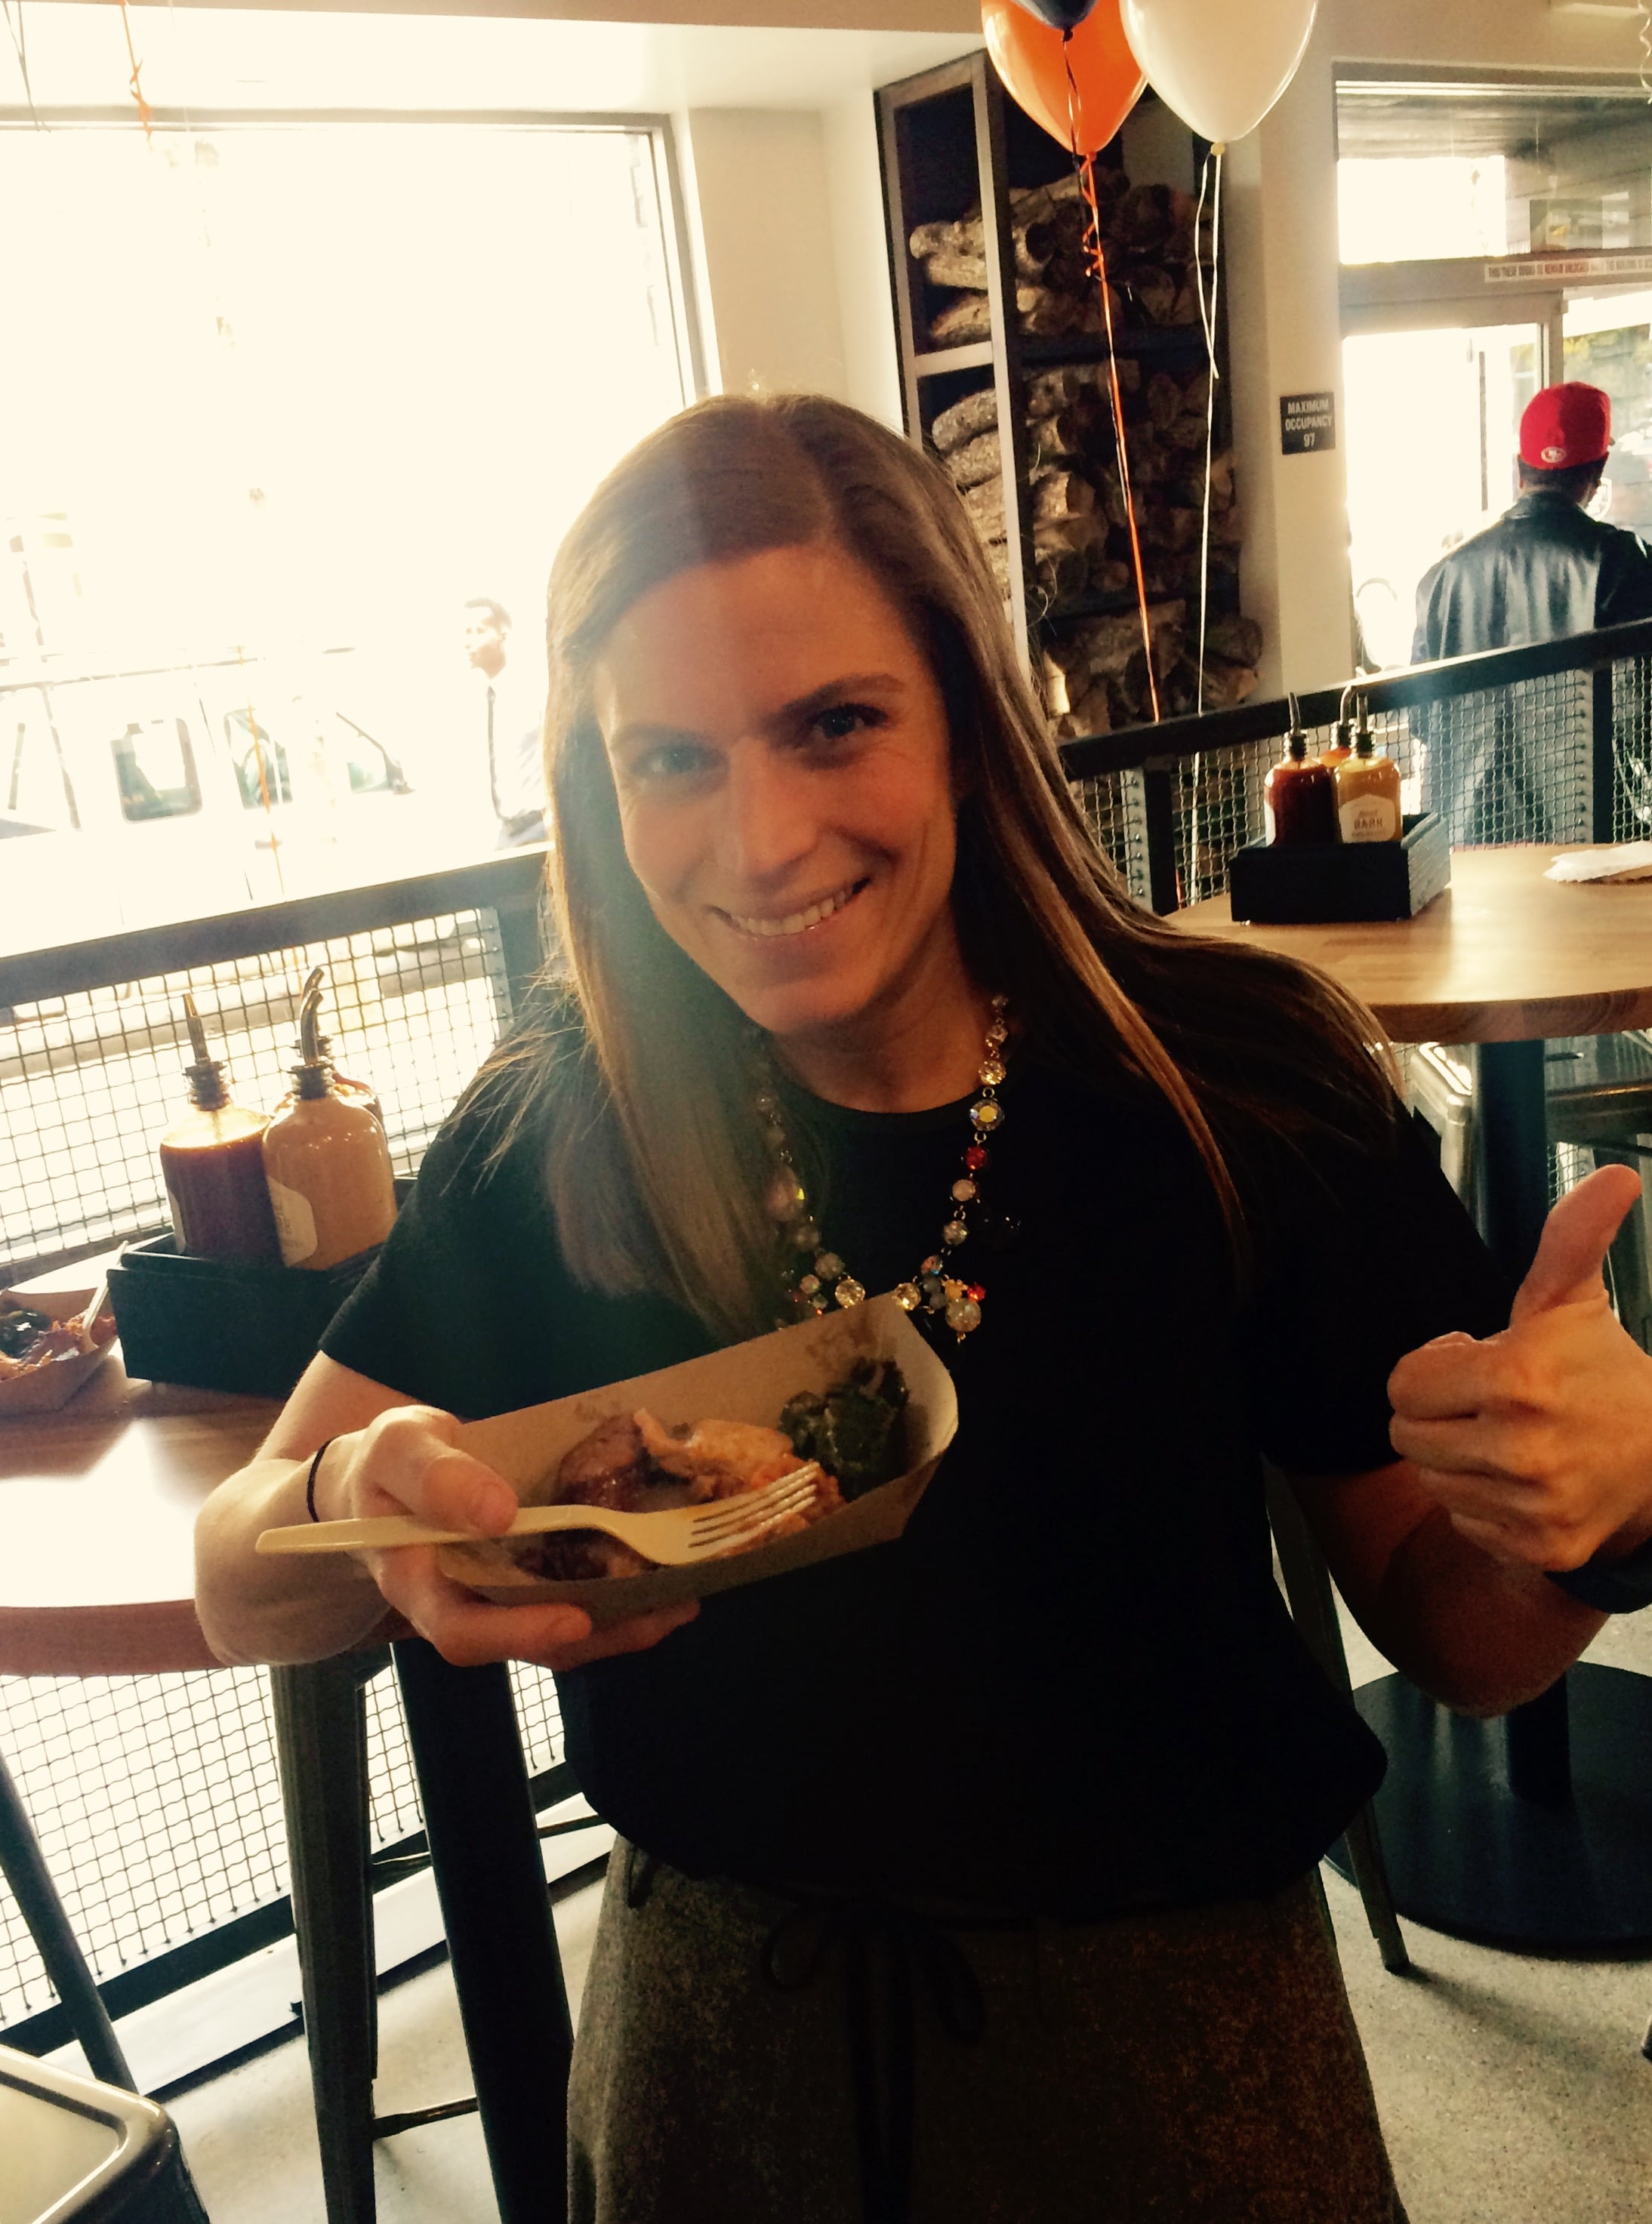 The food at Black Bark BBQ earns a big thumbs-up from Working Solutions Board Member Rachael Claudio